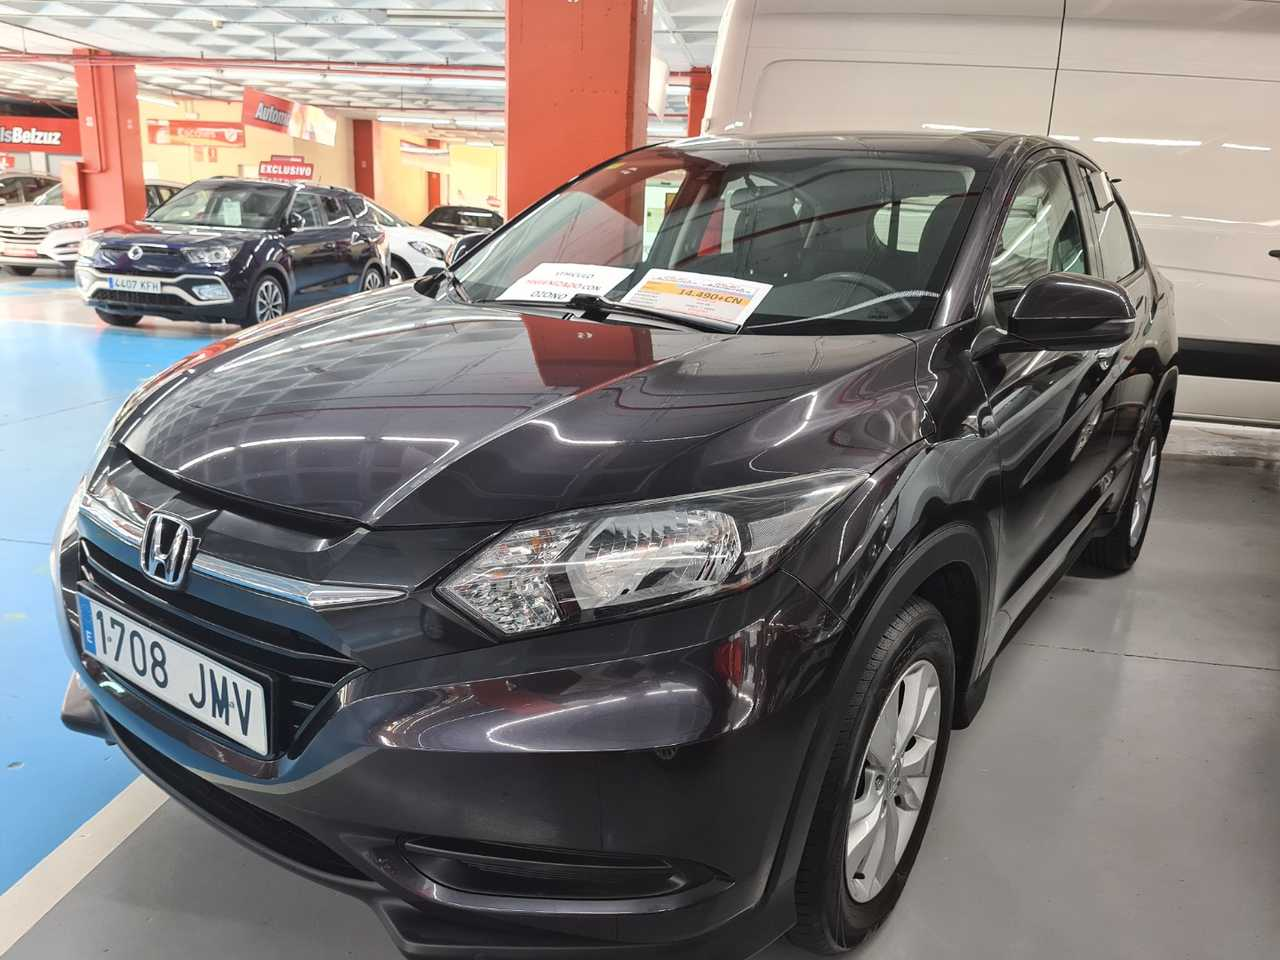 Honda CR-V MANUAL 6 VELO GASOLINA 1500 130 CV  - Foto 1